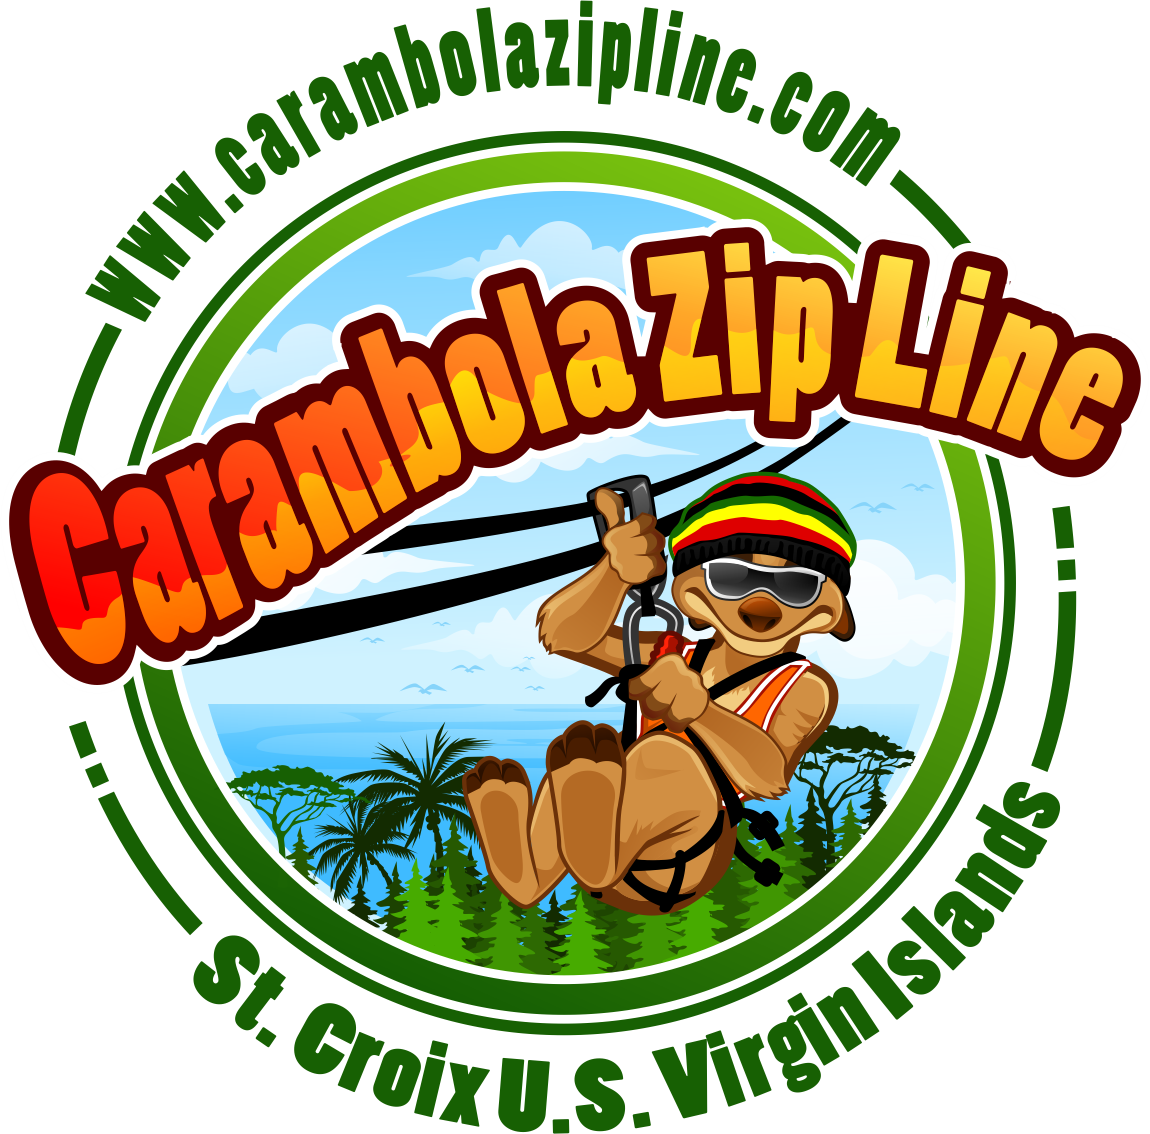 Tropical, Carambola Zip line, caribbean island, adventure safari bus decals